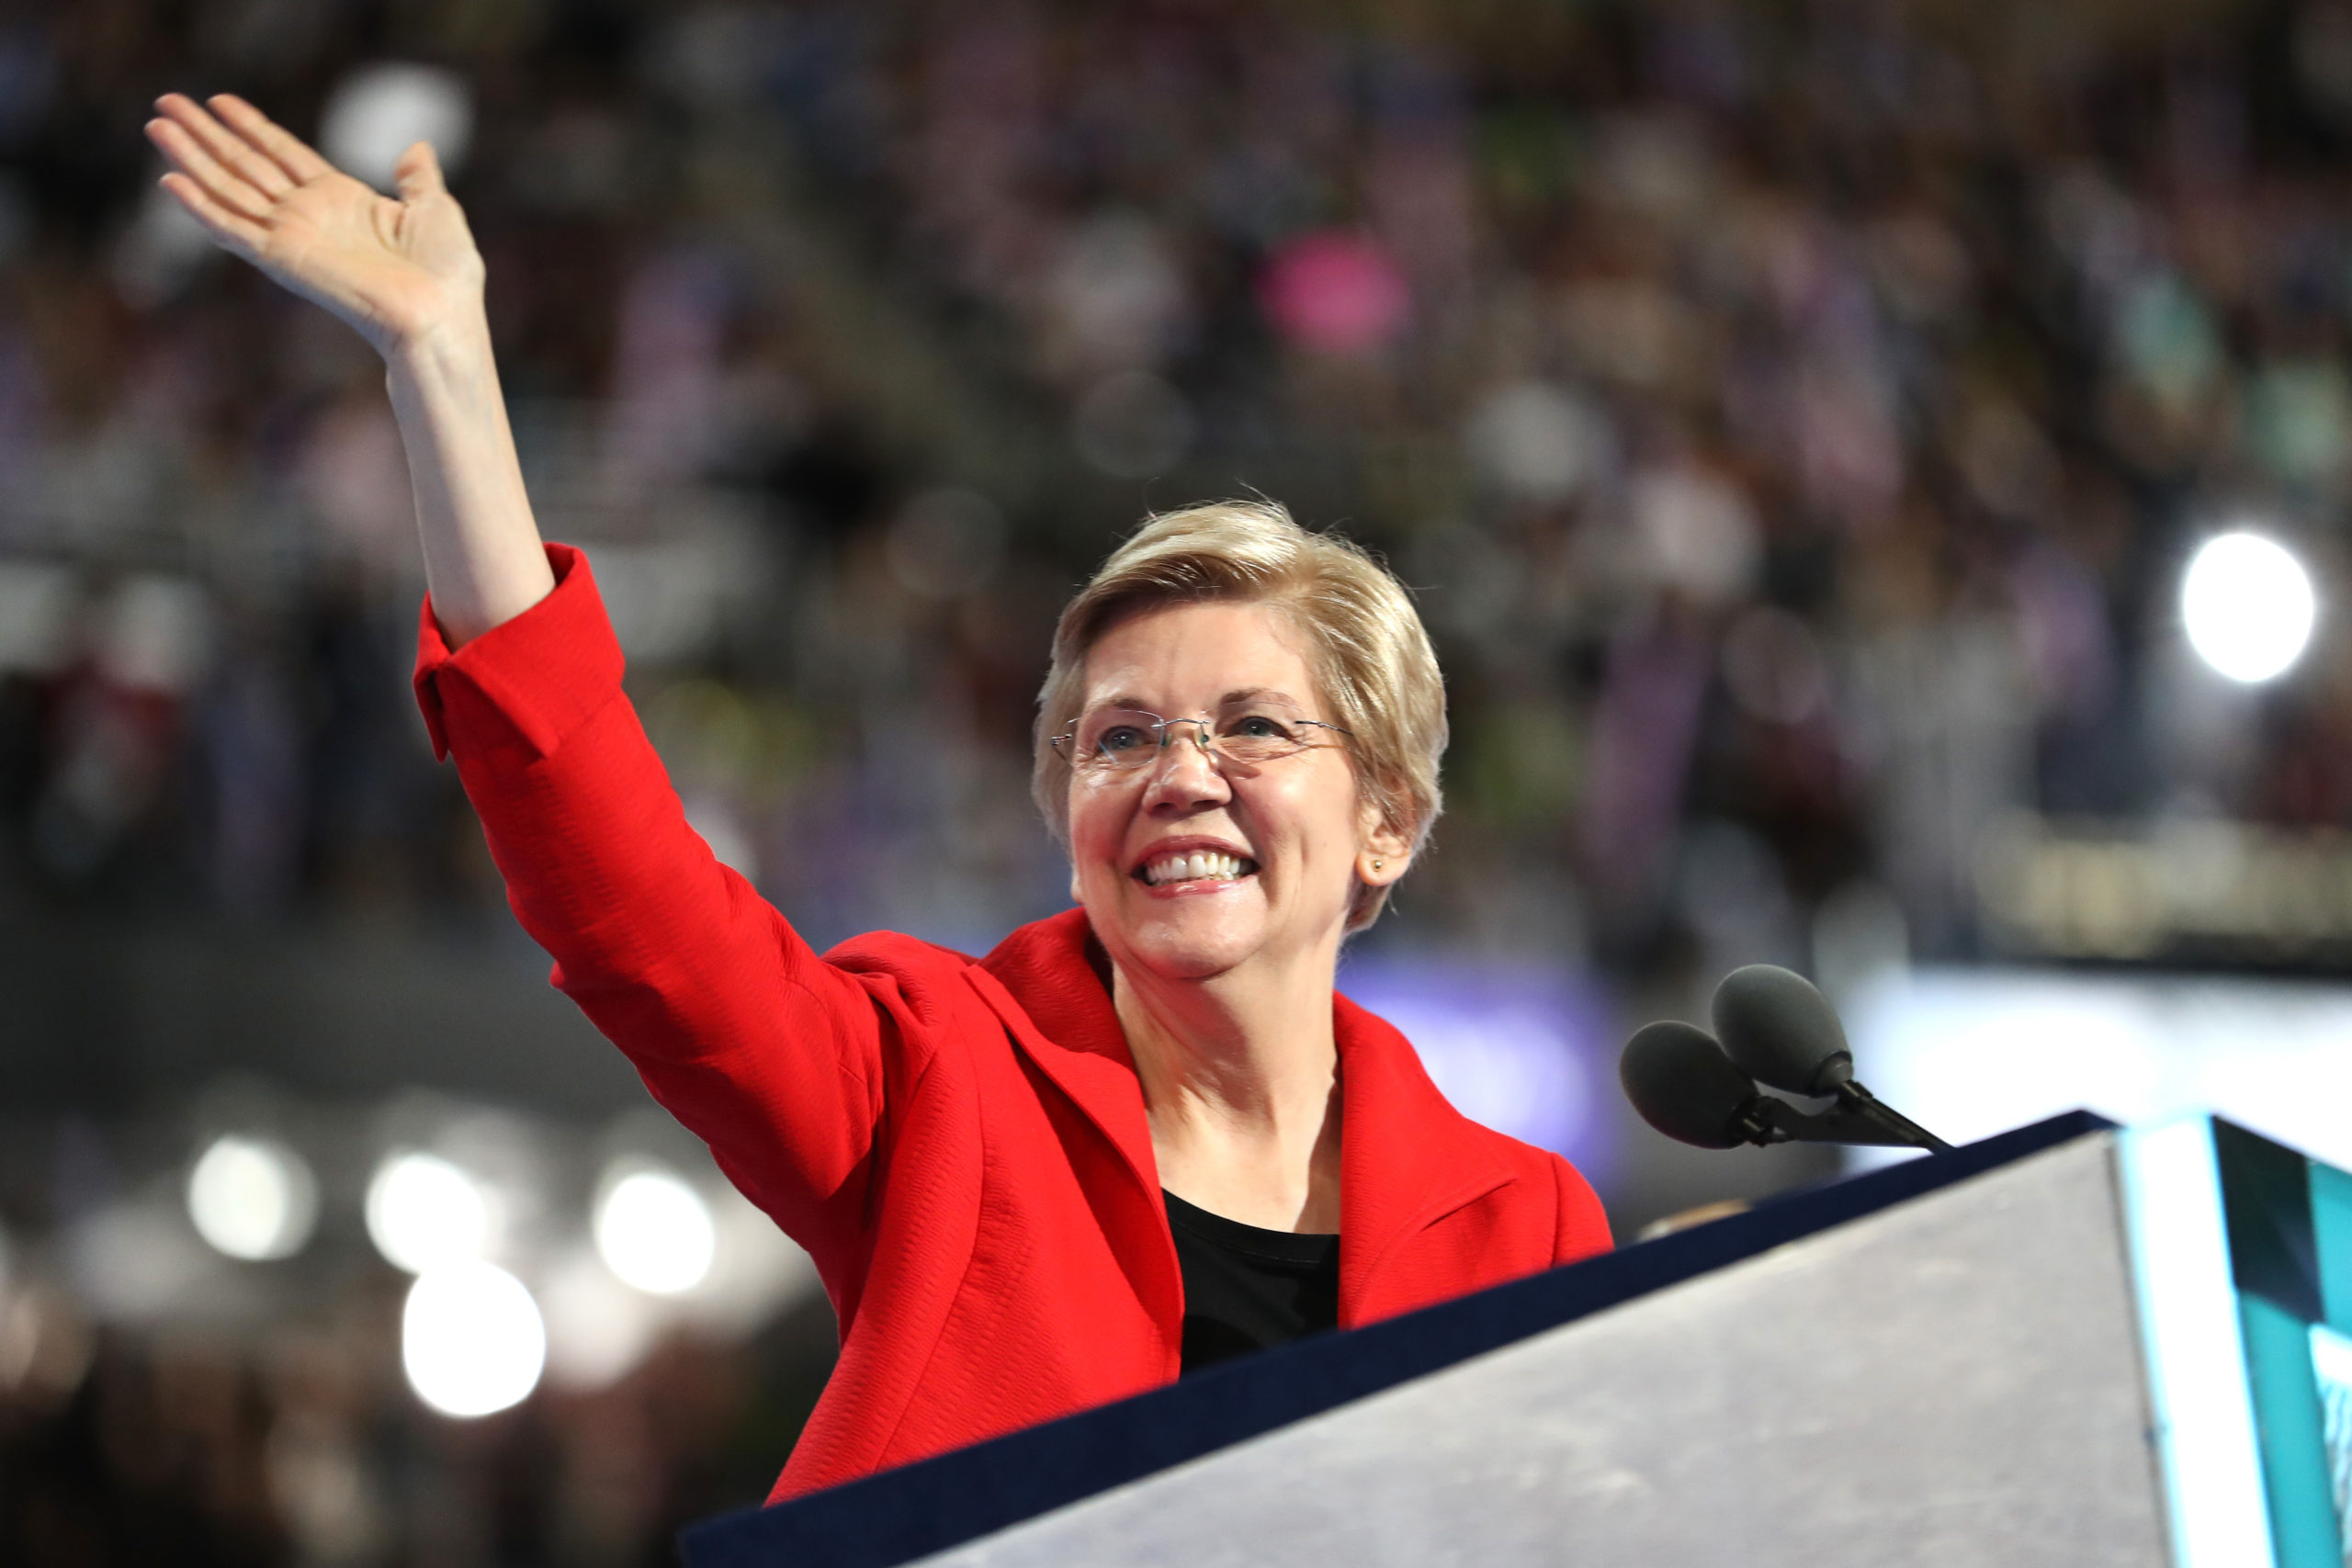 Sen. Elizabeth Warren (D-MA) acknowledges the crowd as she walks on stage to deliver remarks on the first day of the Democratic National Convention at the Wells Fargo Center, July 25, 2016 in Philadelphia, Pennsylvania. An estimated 50,000 people are expected in Philadelphia, including hundreds of protesters and members of the media. The four-day Democratic National Convention kicked off July 25. (Photo by Joe Raedle/Getty Images)